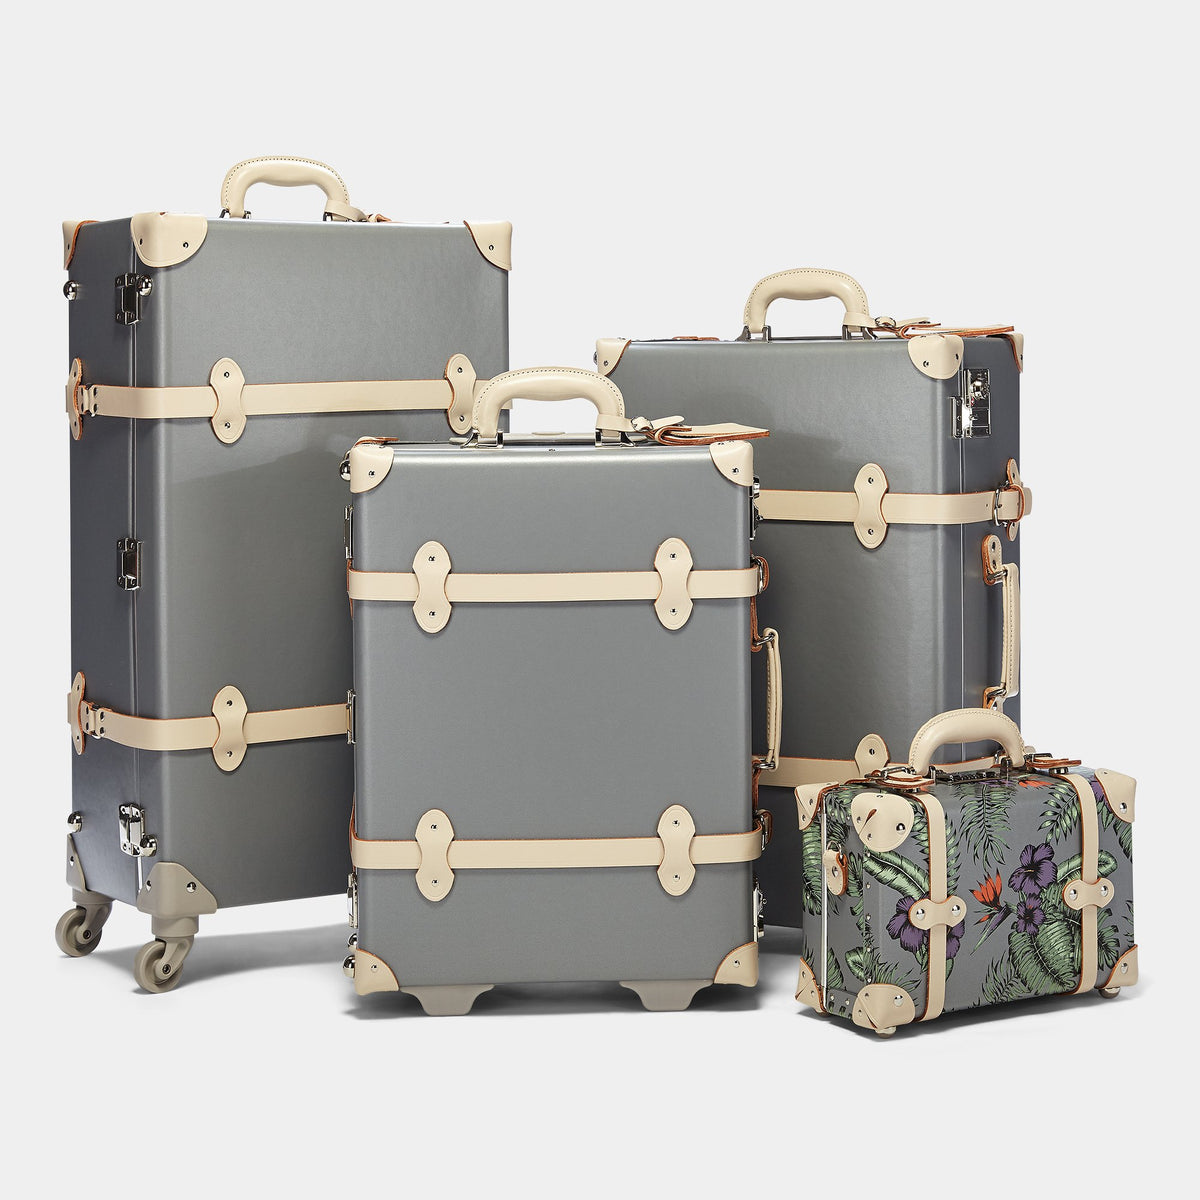 The Botanist Stowaway in Grey - Vintage-Inspired Luggage - Alongside matching cases from the Botanist Grey Collection